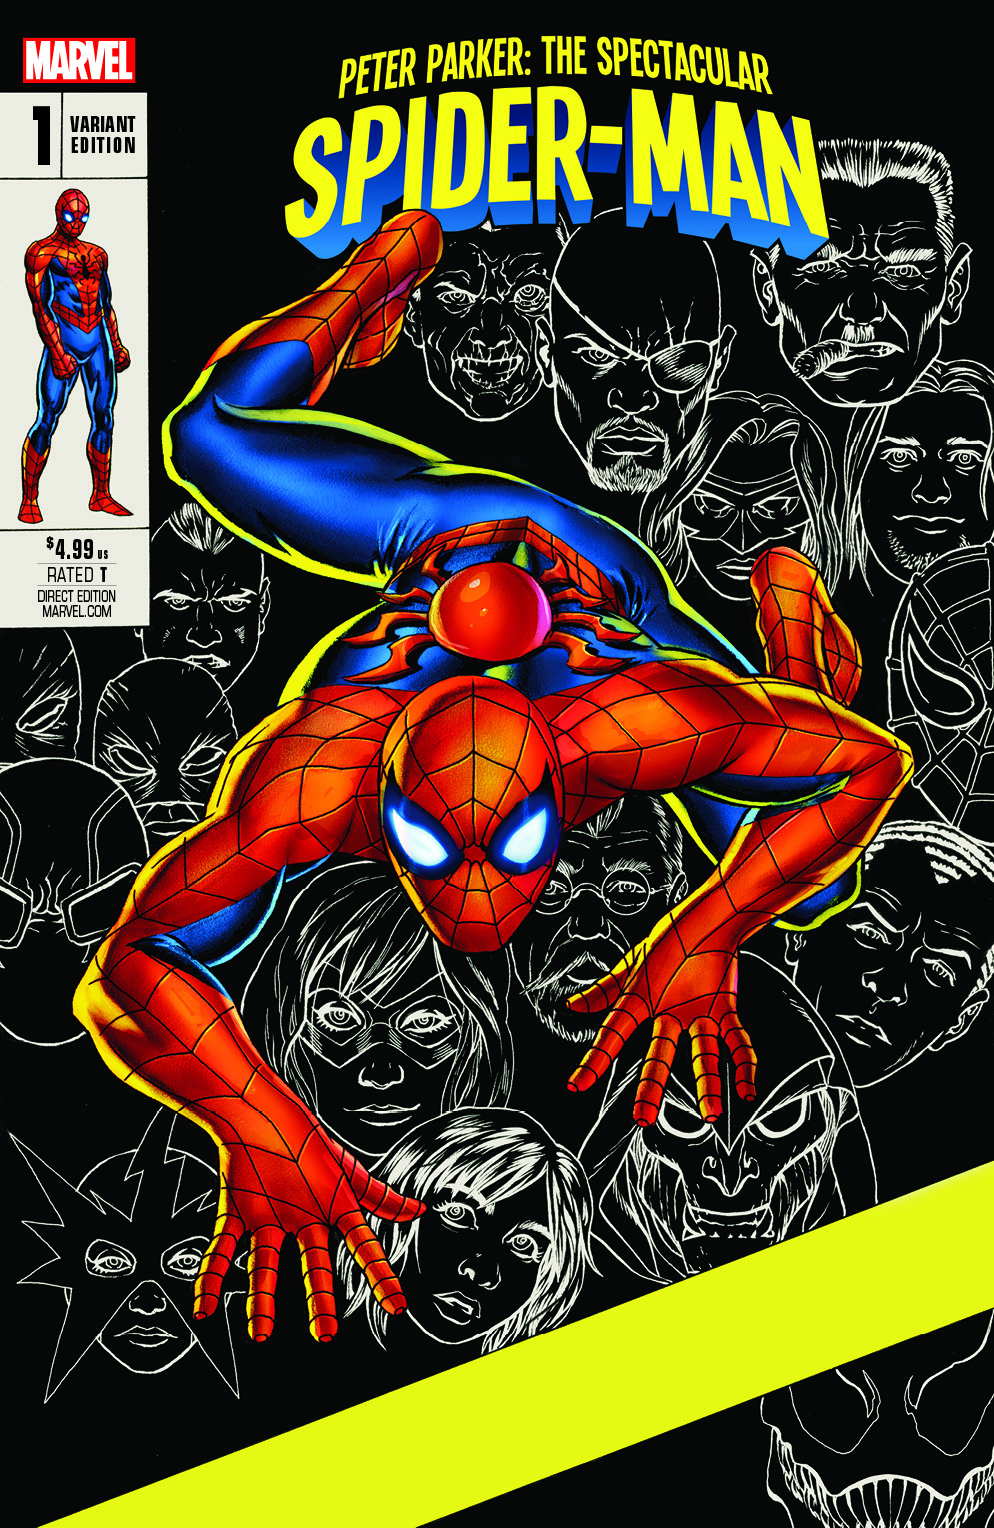 Exclusive Version of Marvel's New Spider-Man Comic Book